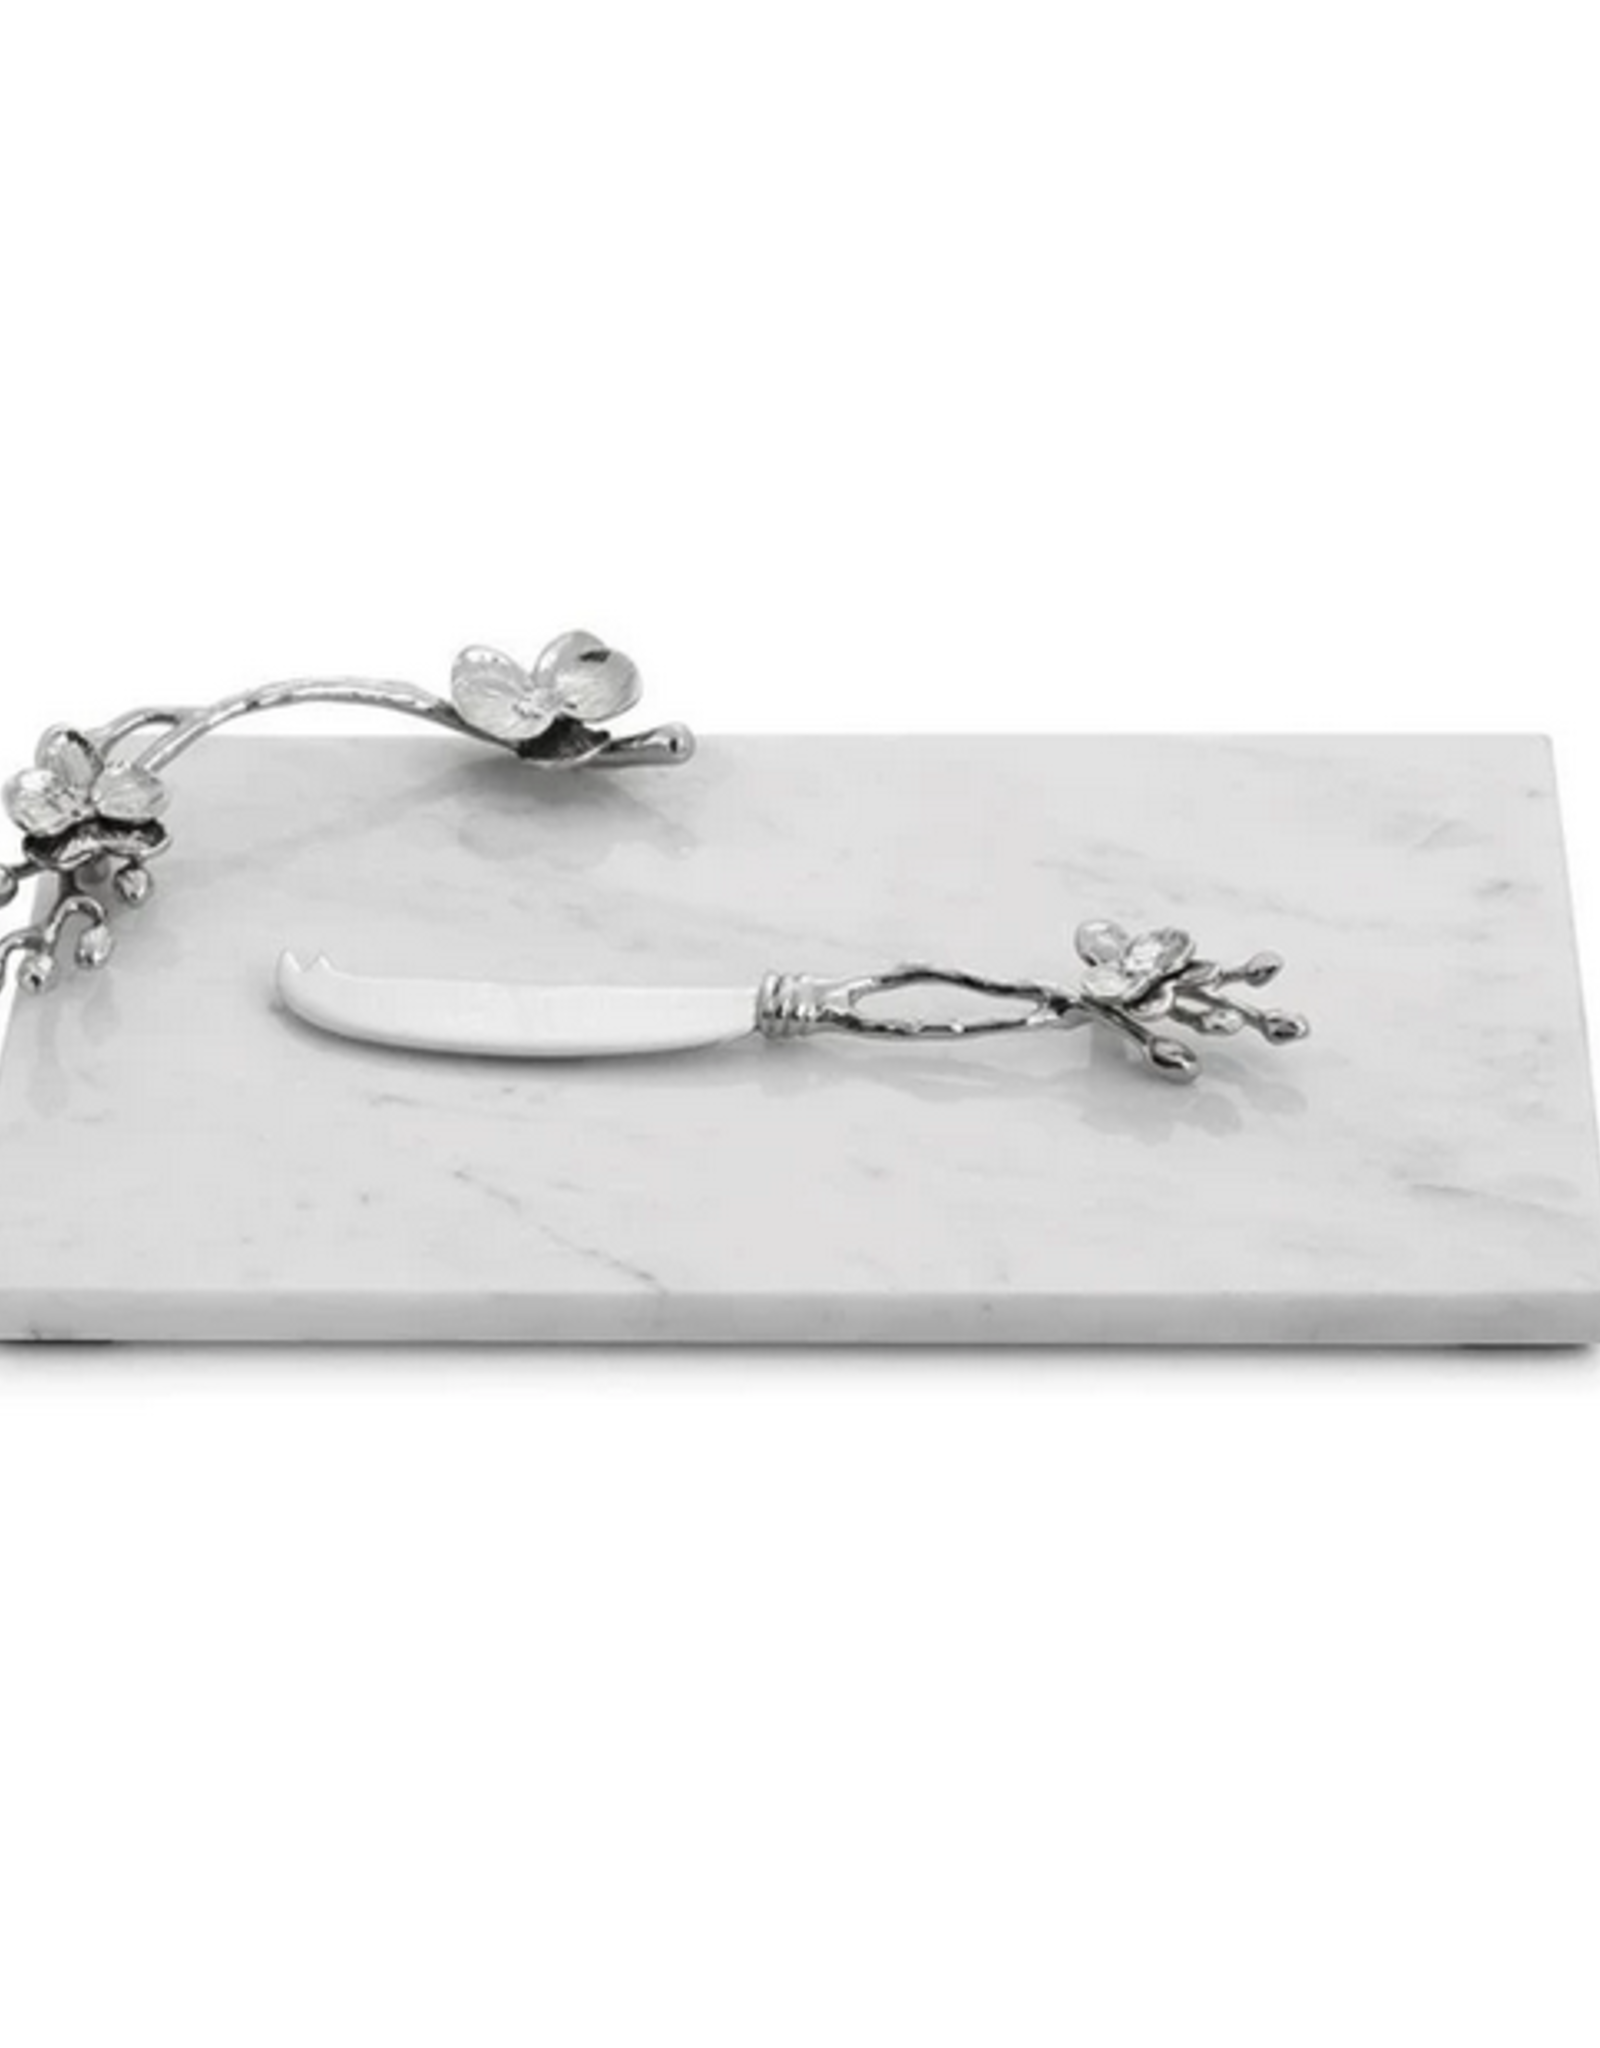 White Orchid Small Cheese Board w/ Knife, Michael Aram